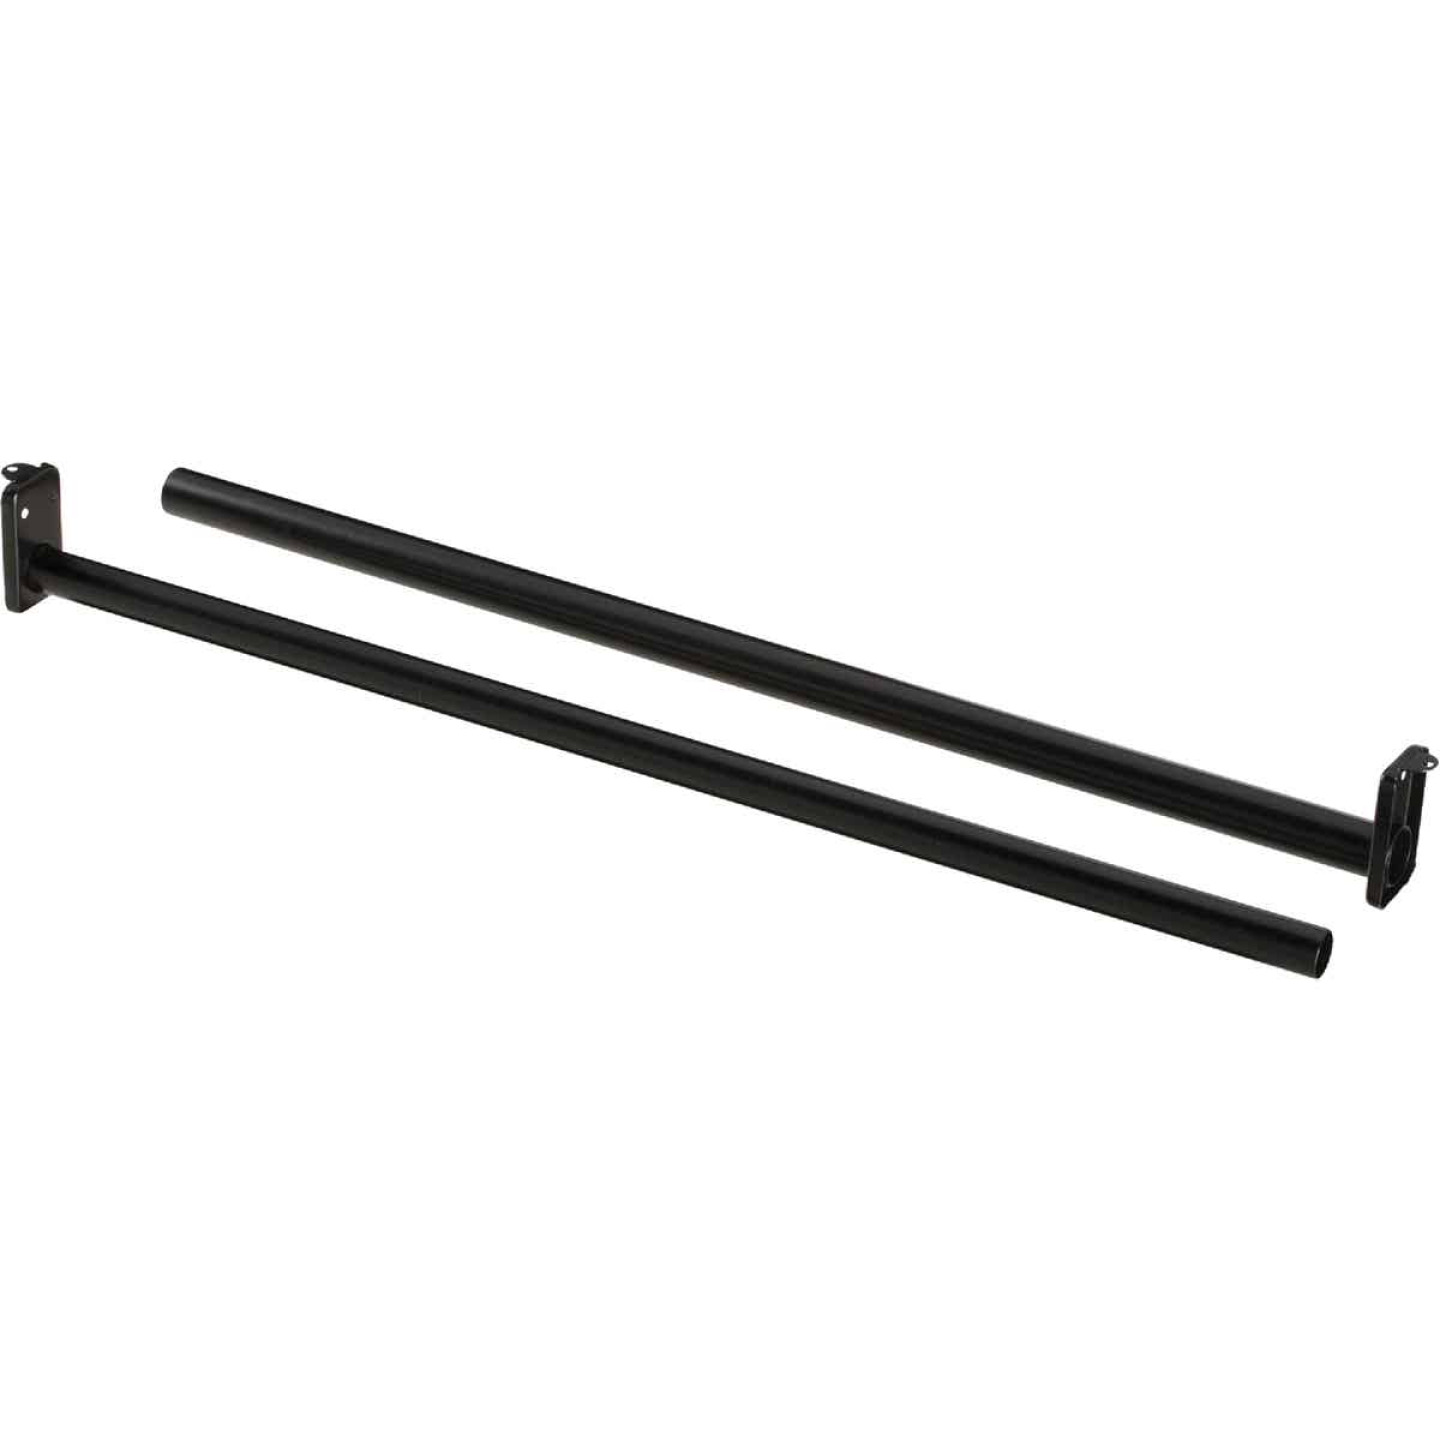 National 30 In. To 48 In. Adjustable Closet Rod, Oil Rubbed Bronze Image 1